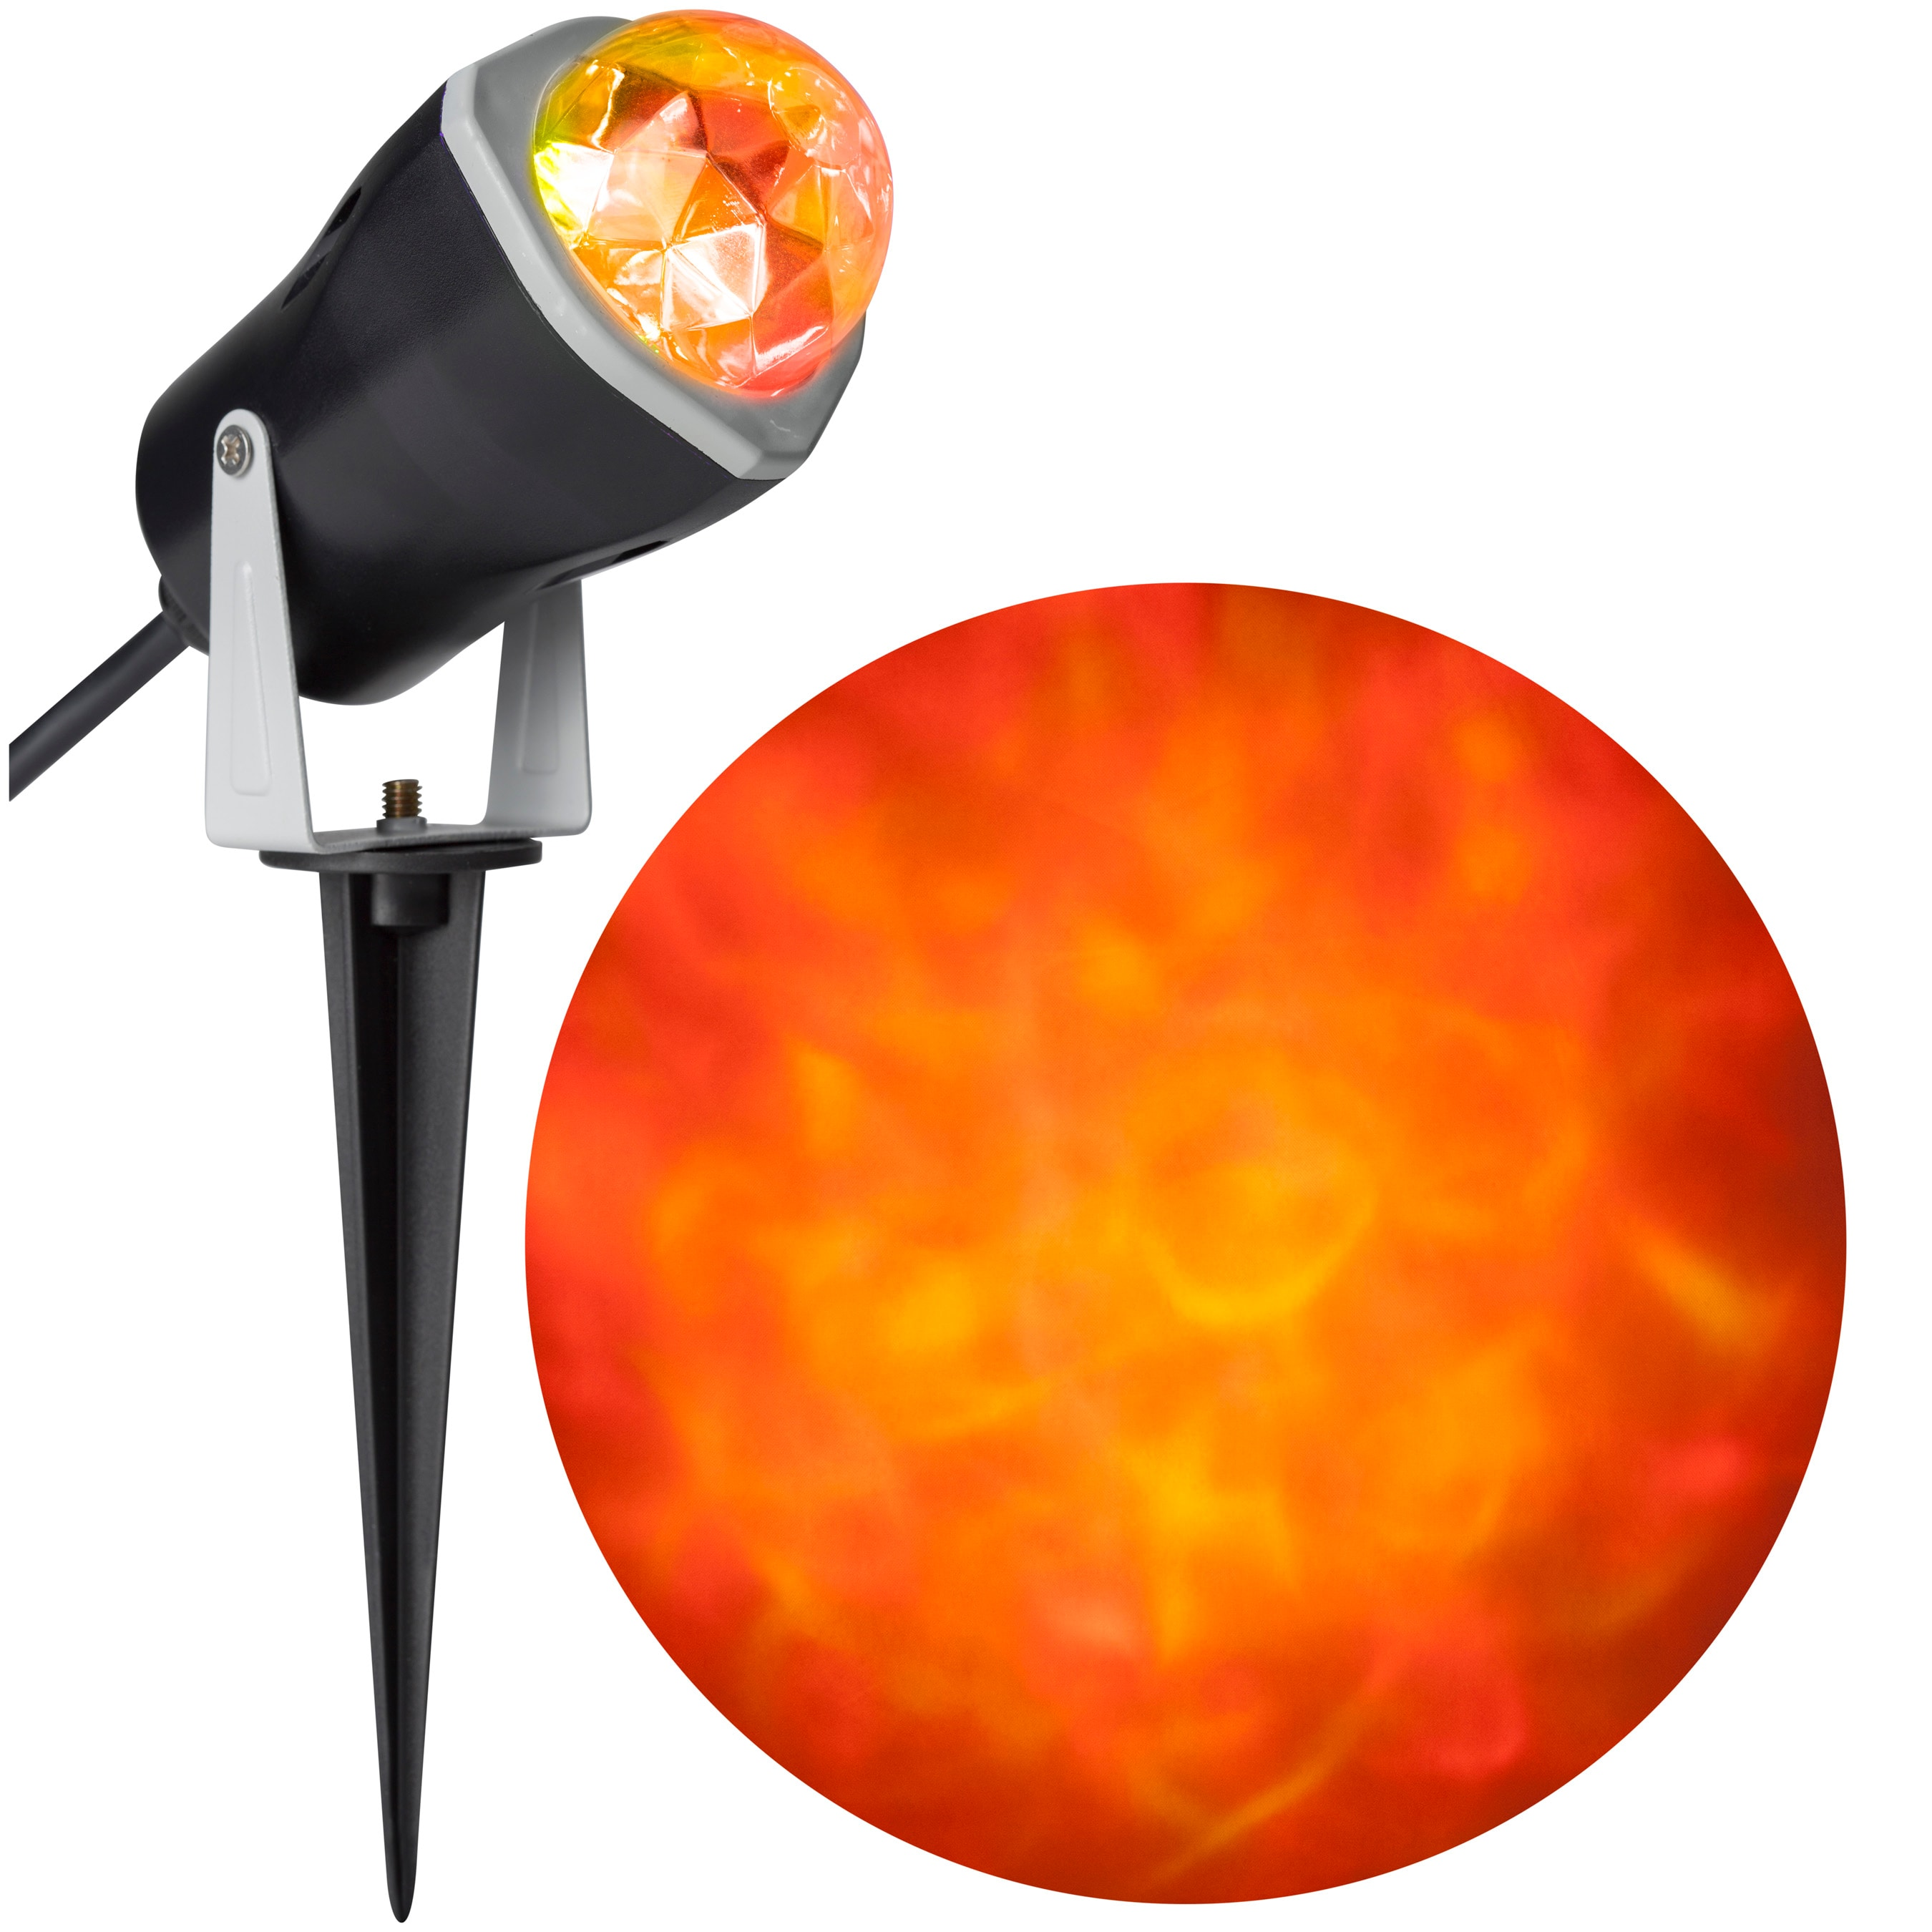 Gemmy Fire and Ice LightShow Multi-Function Red, Yellow LED Kaleidoscope Halloween Indoor/Outdoor Spotlight Projector